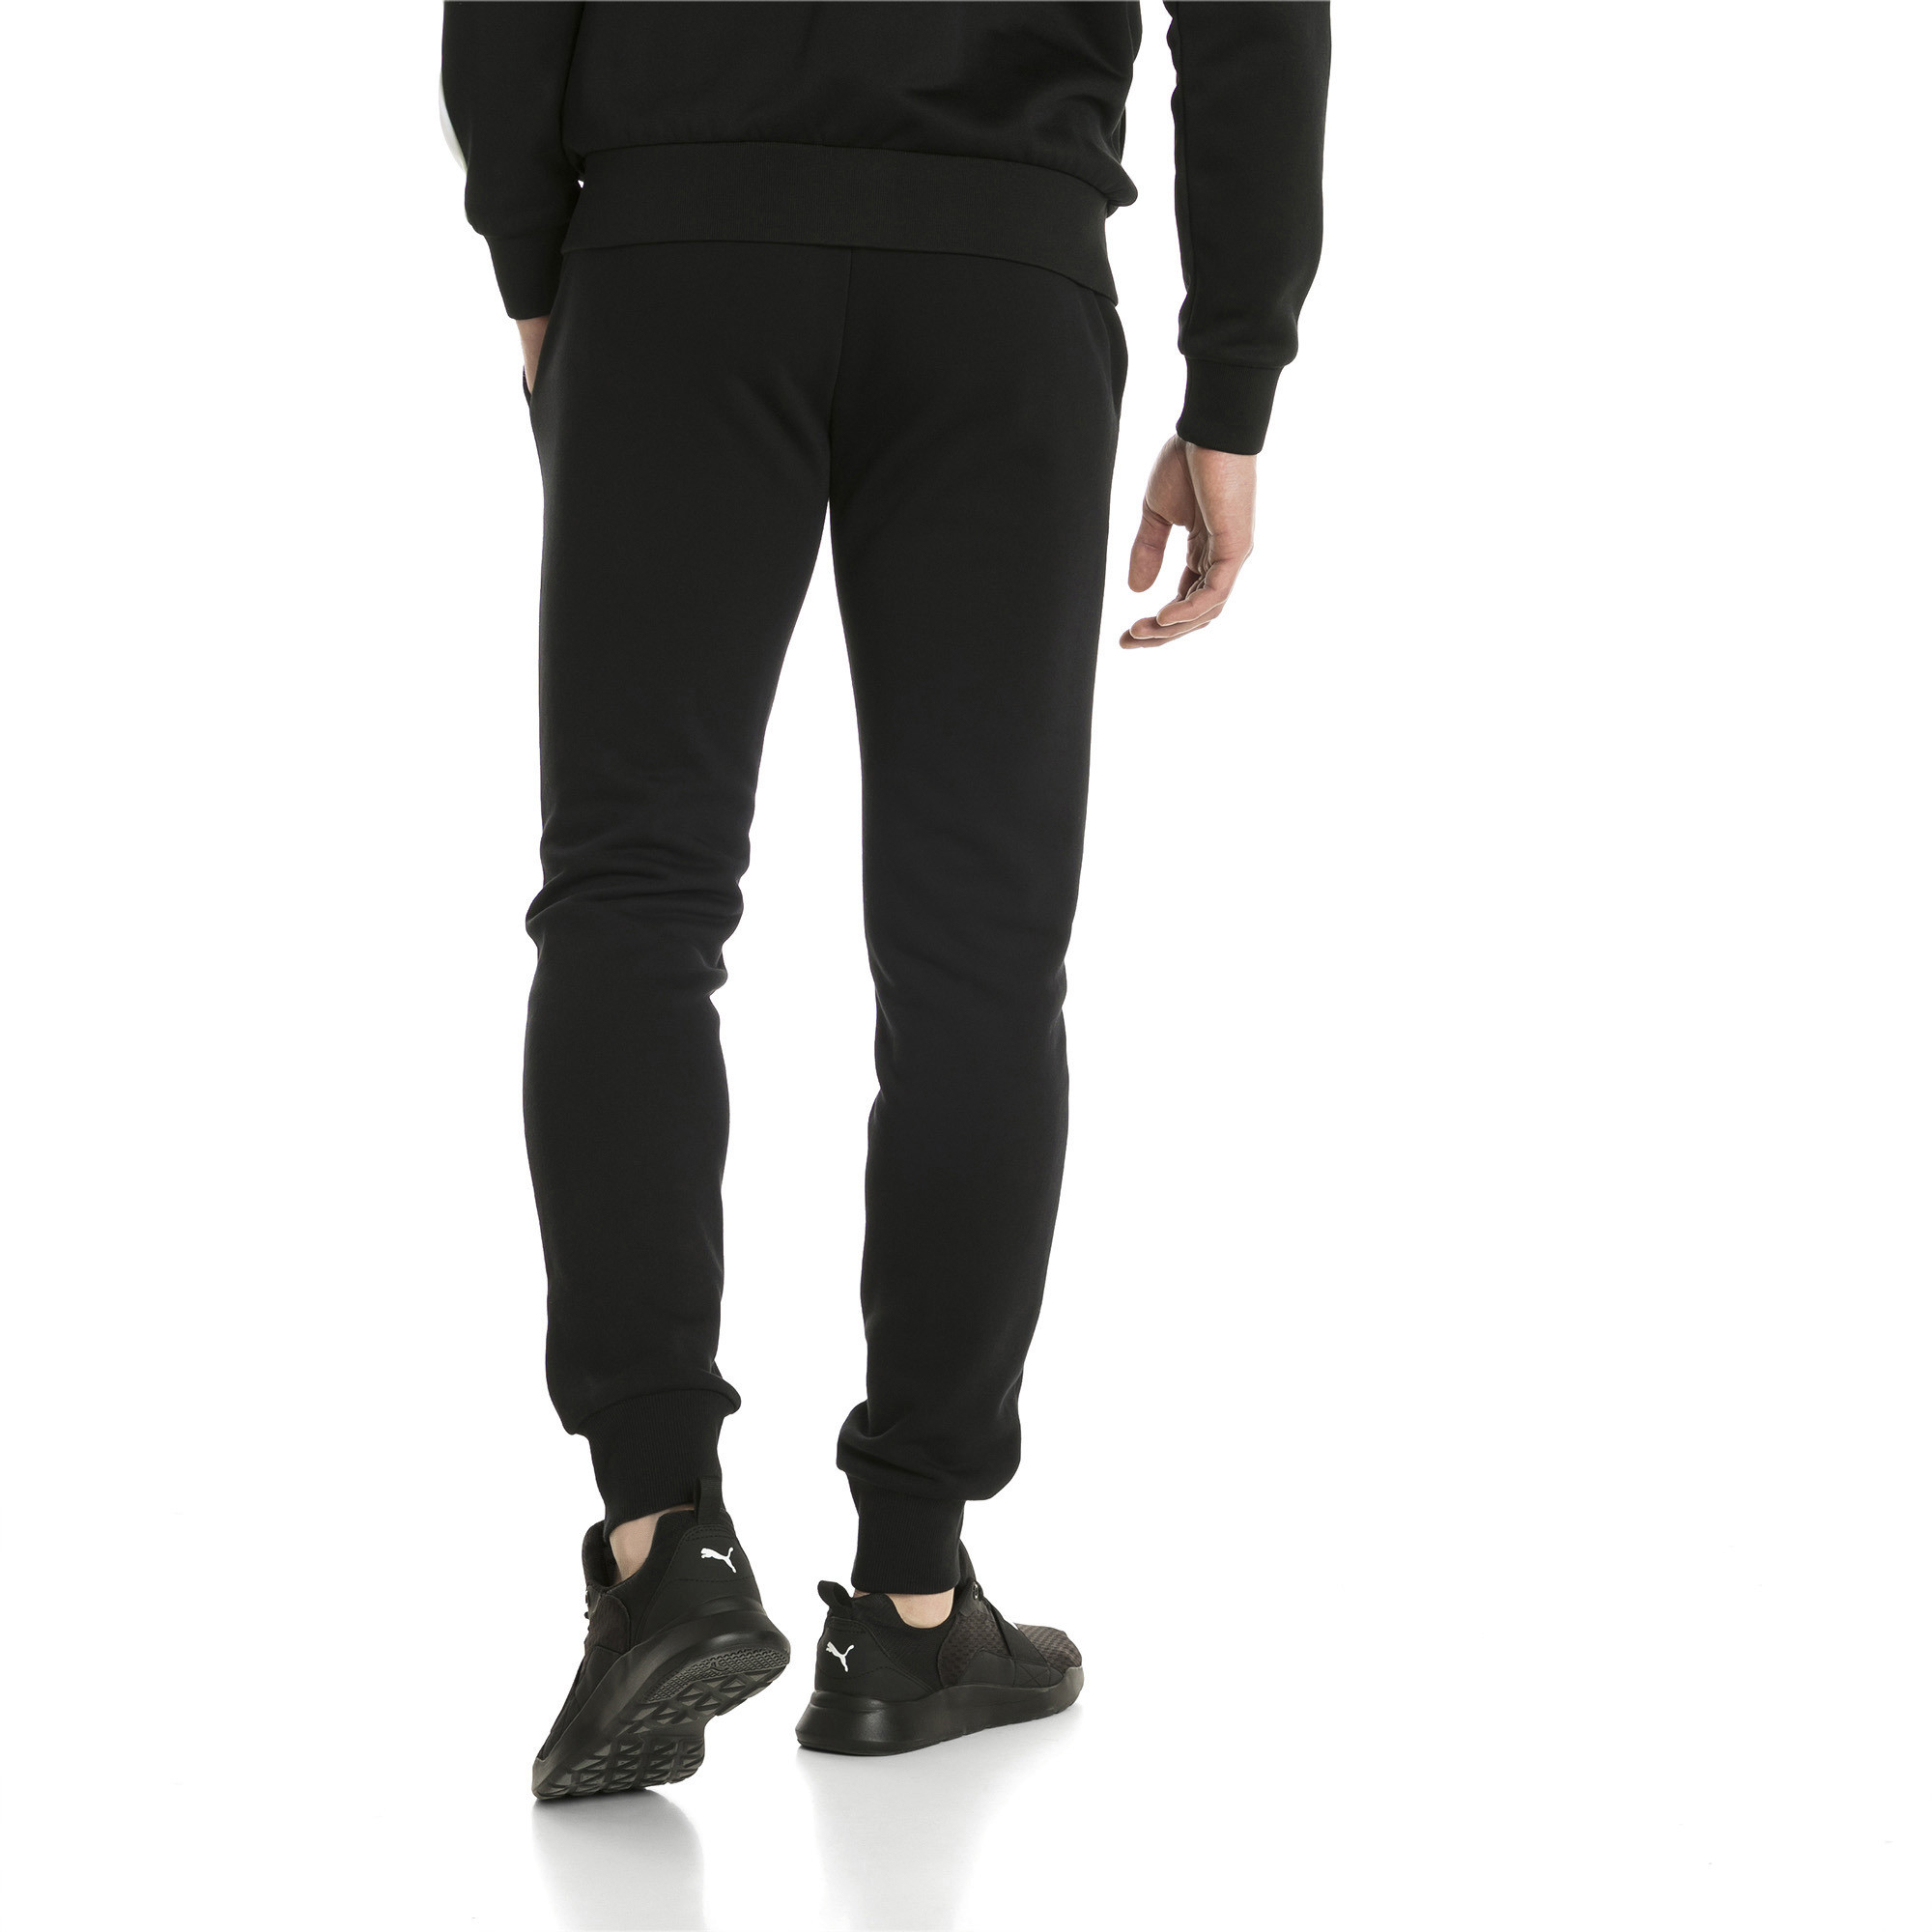 PUMA-Essentials-Men-039-s-Fleece-Knit-Pants-Men-Knitted-Pants-Basics thumbnail 14